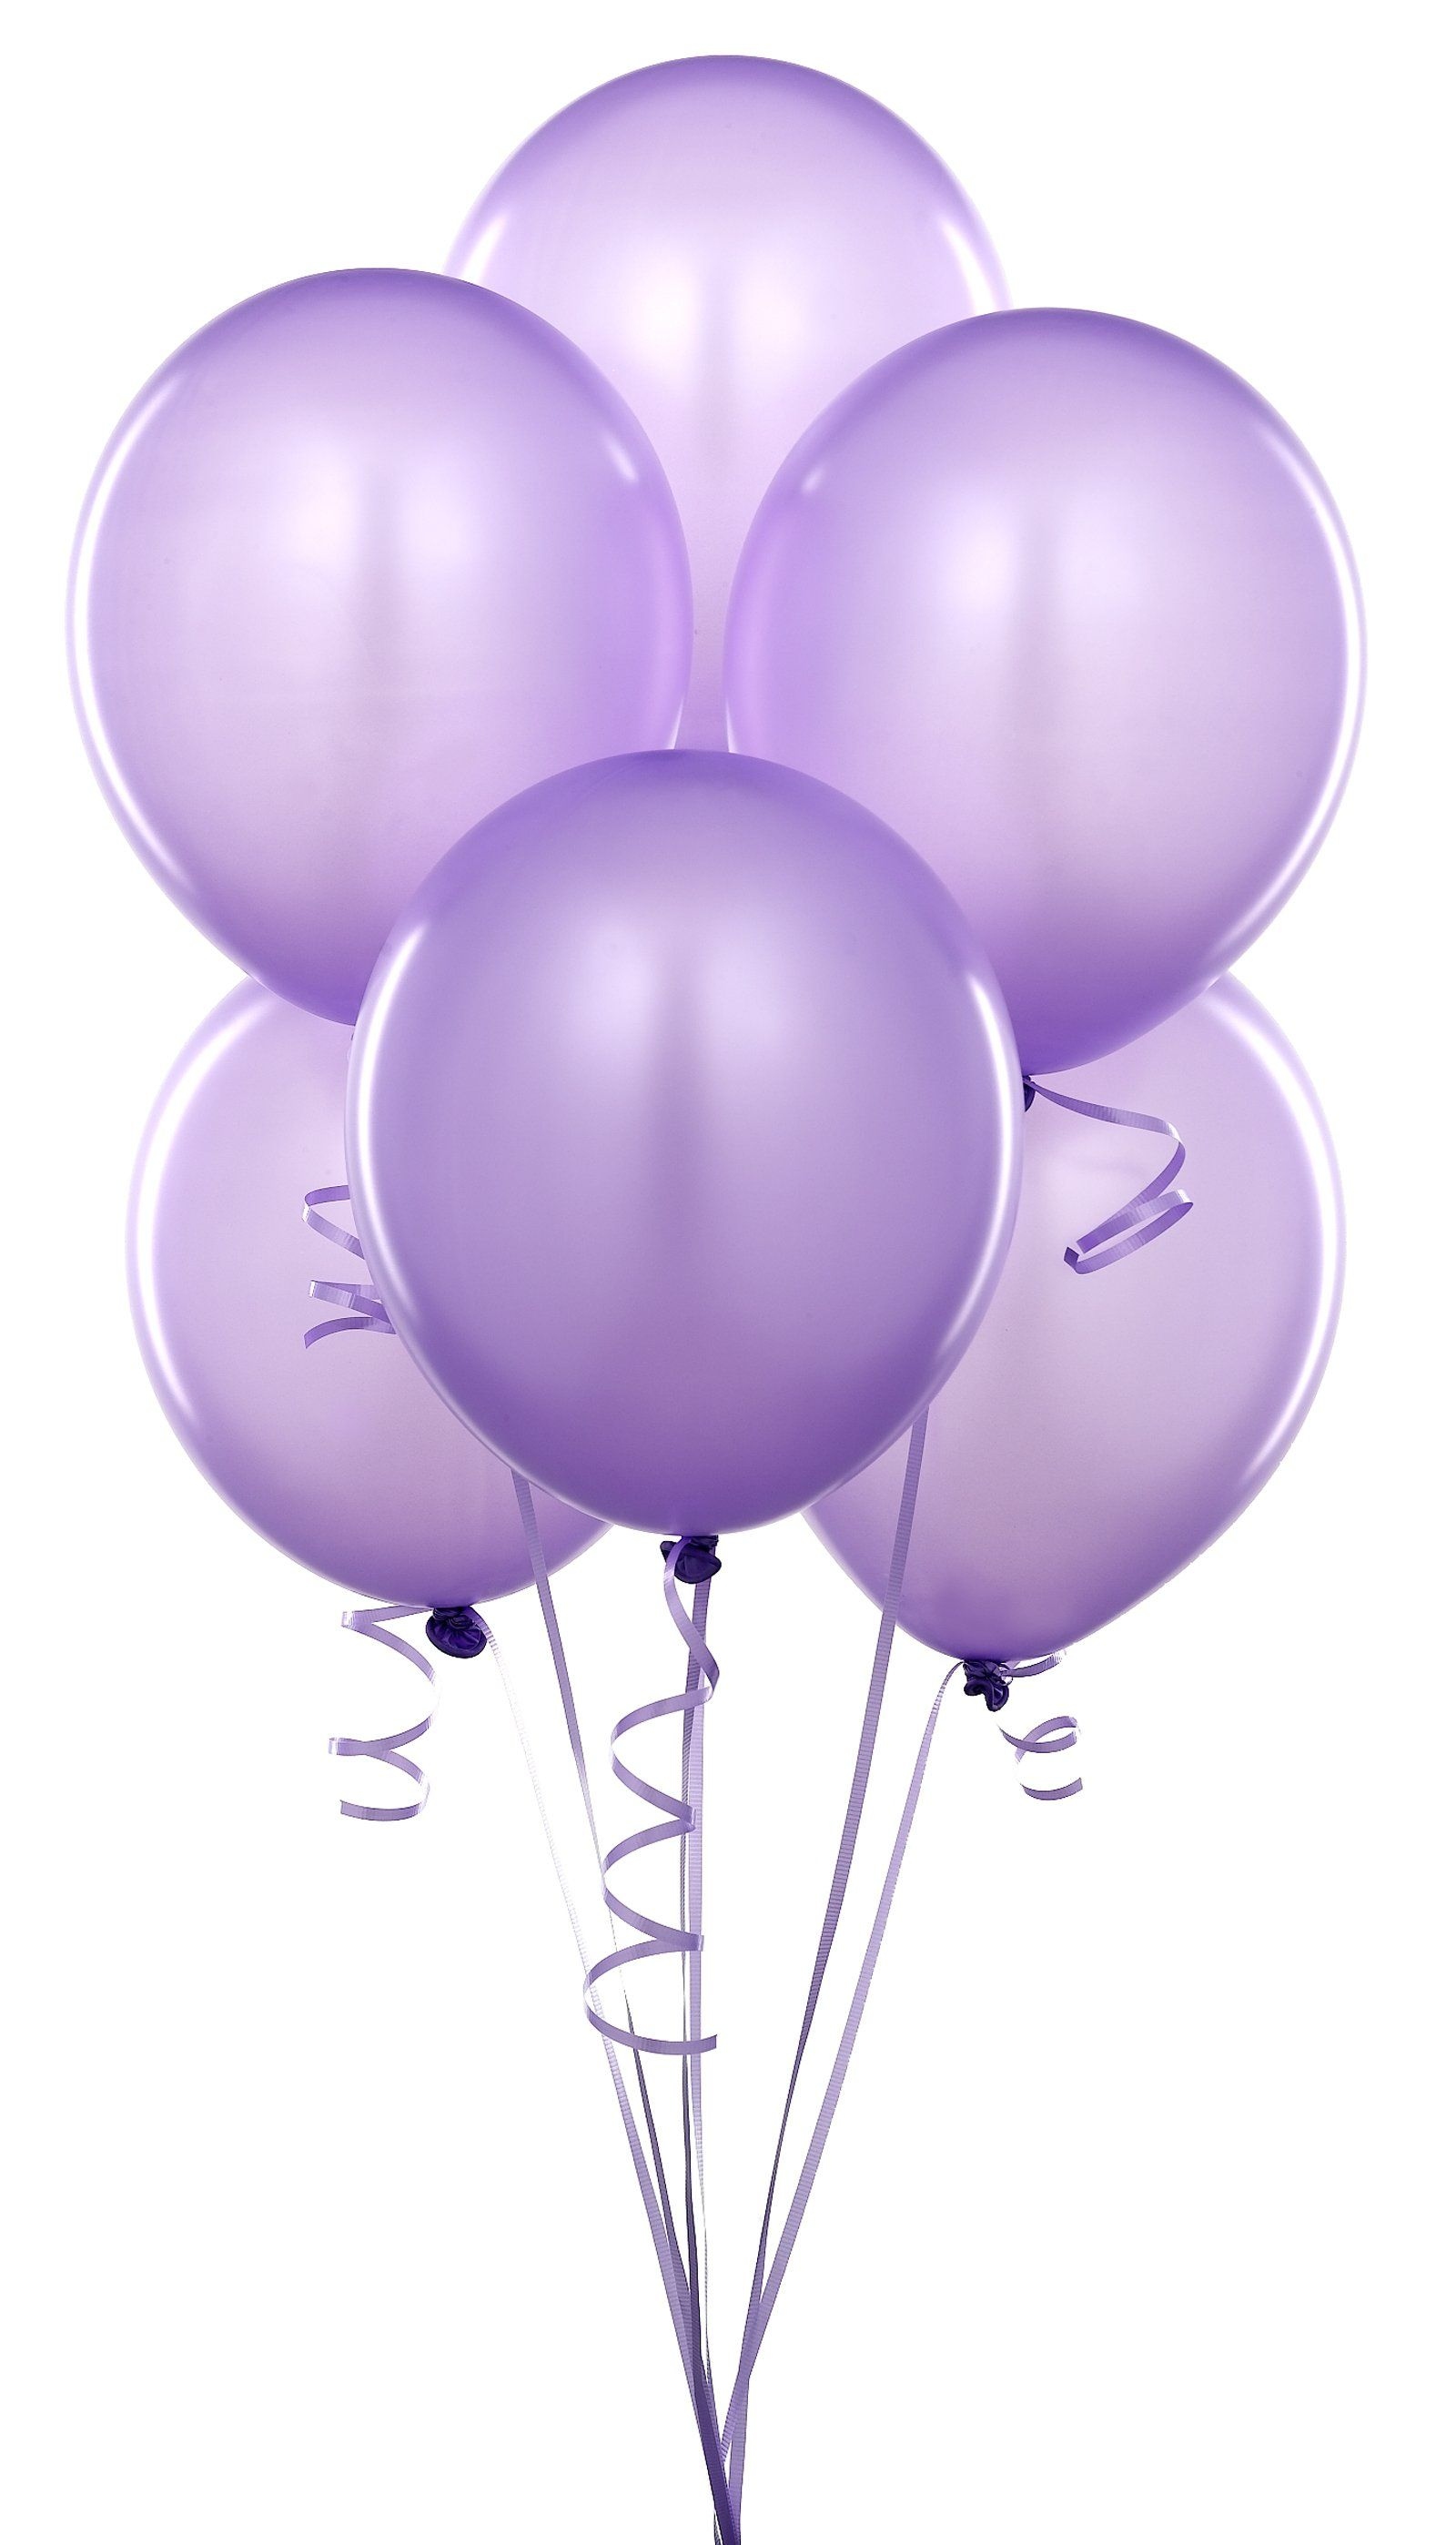 Lavender balloons lavender love pinterest lavender for What to do with balloons